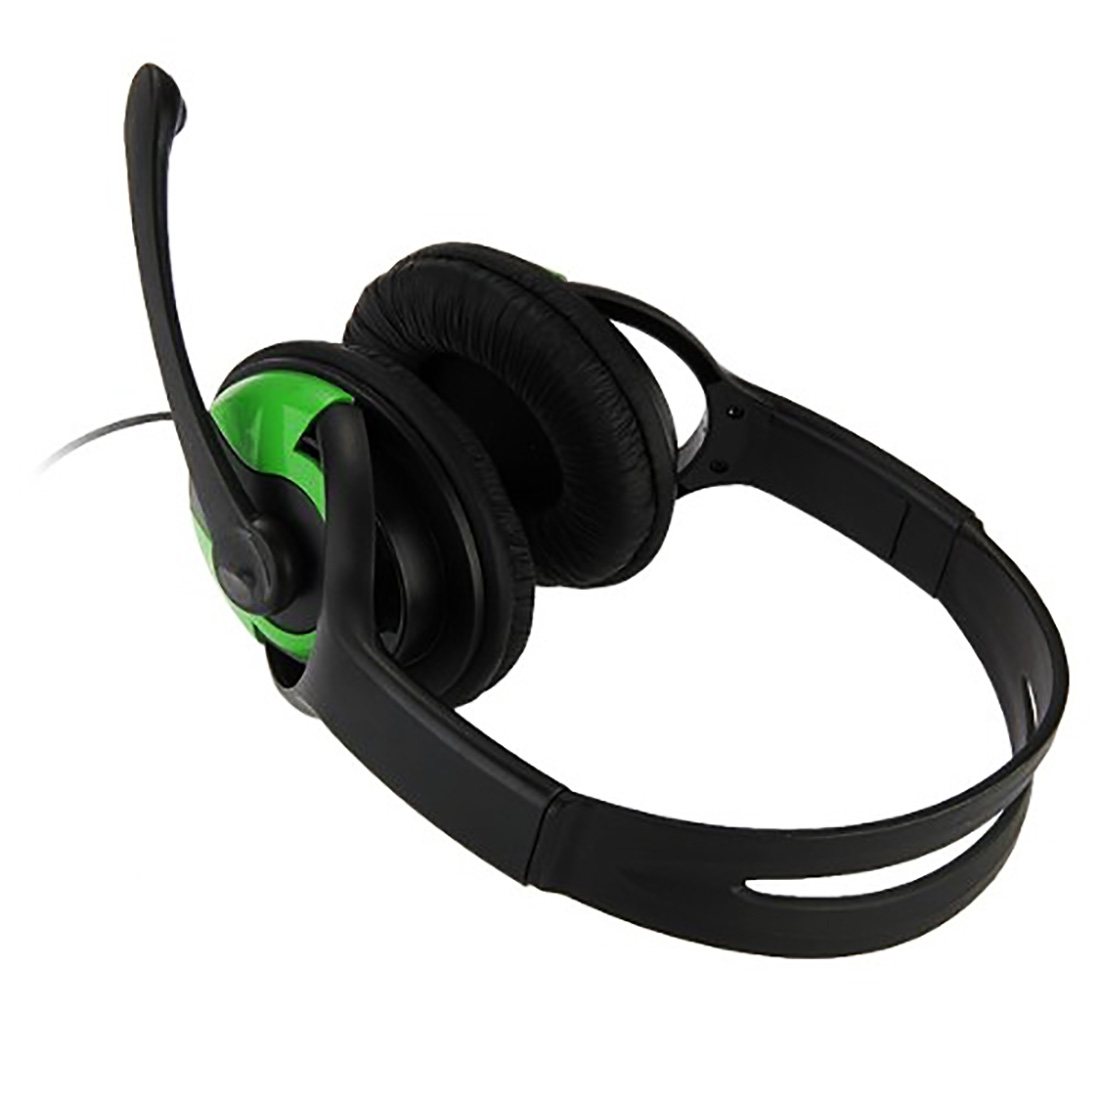 Marsnaska Fashion Hot Sale Adjustable TOP Gaming Headset wired Earphone Headsets + Mic Microphone for Xbox360 black green